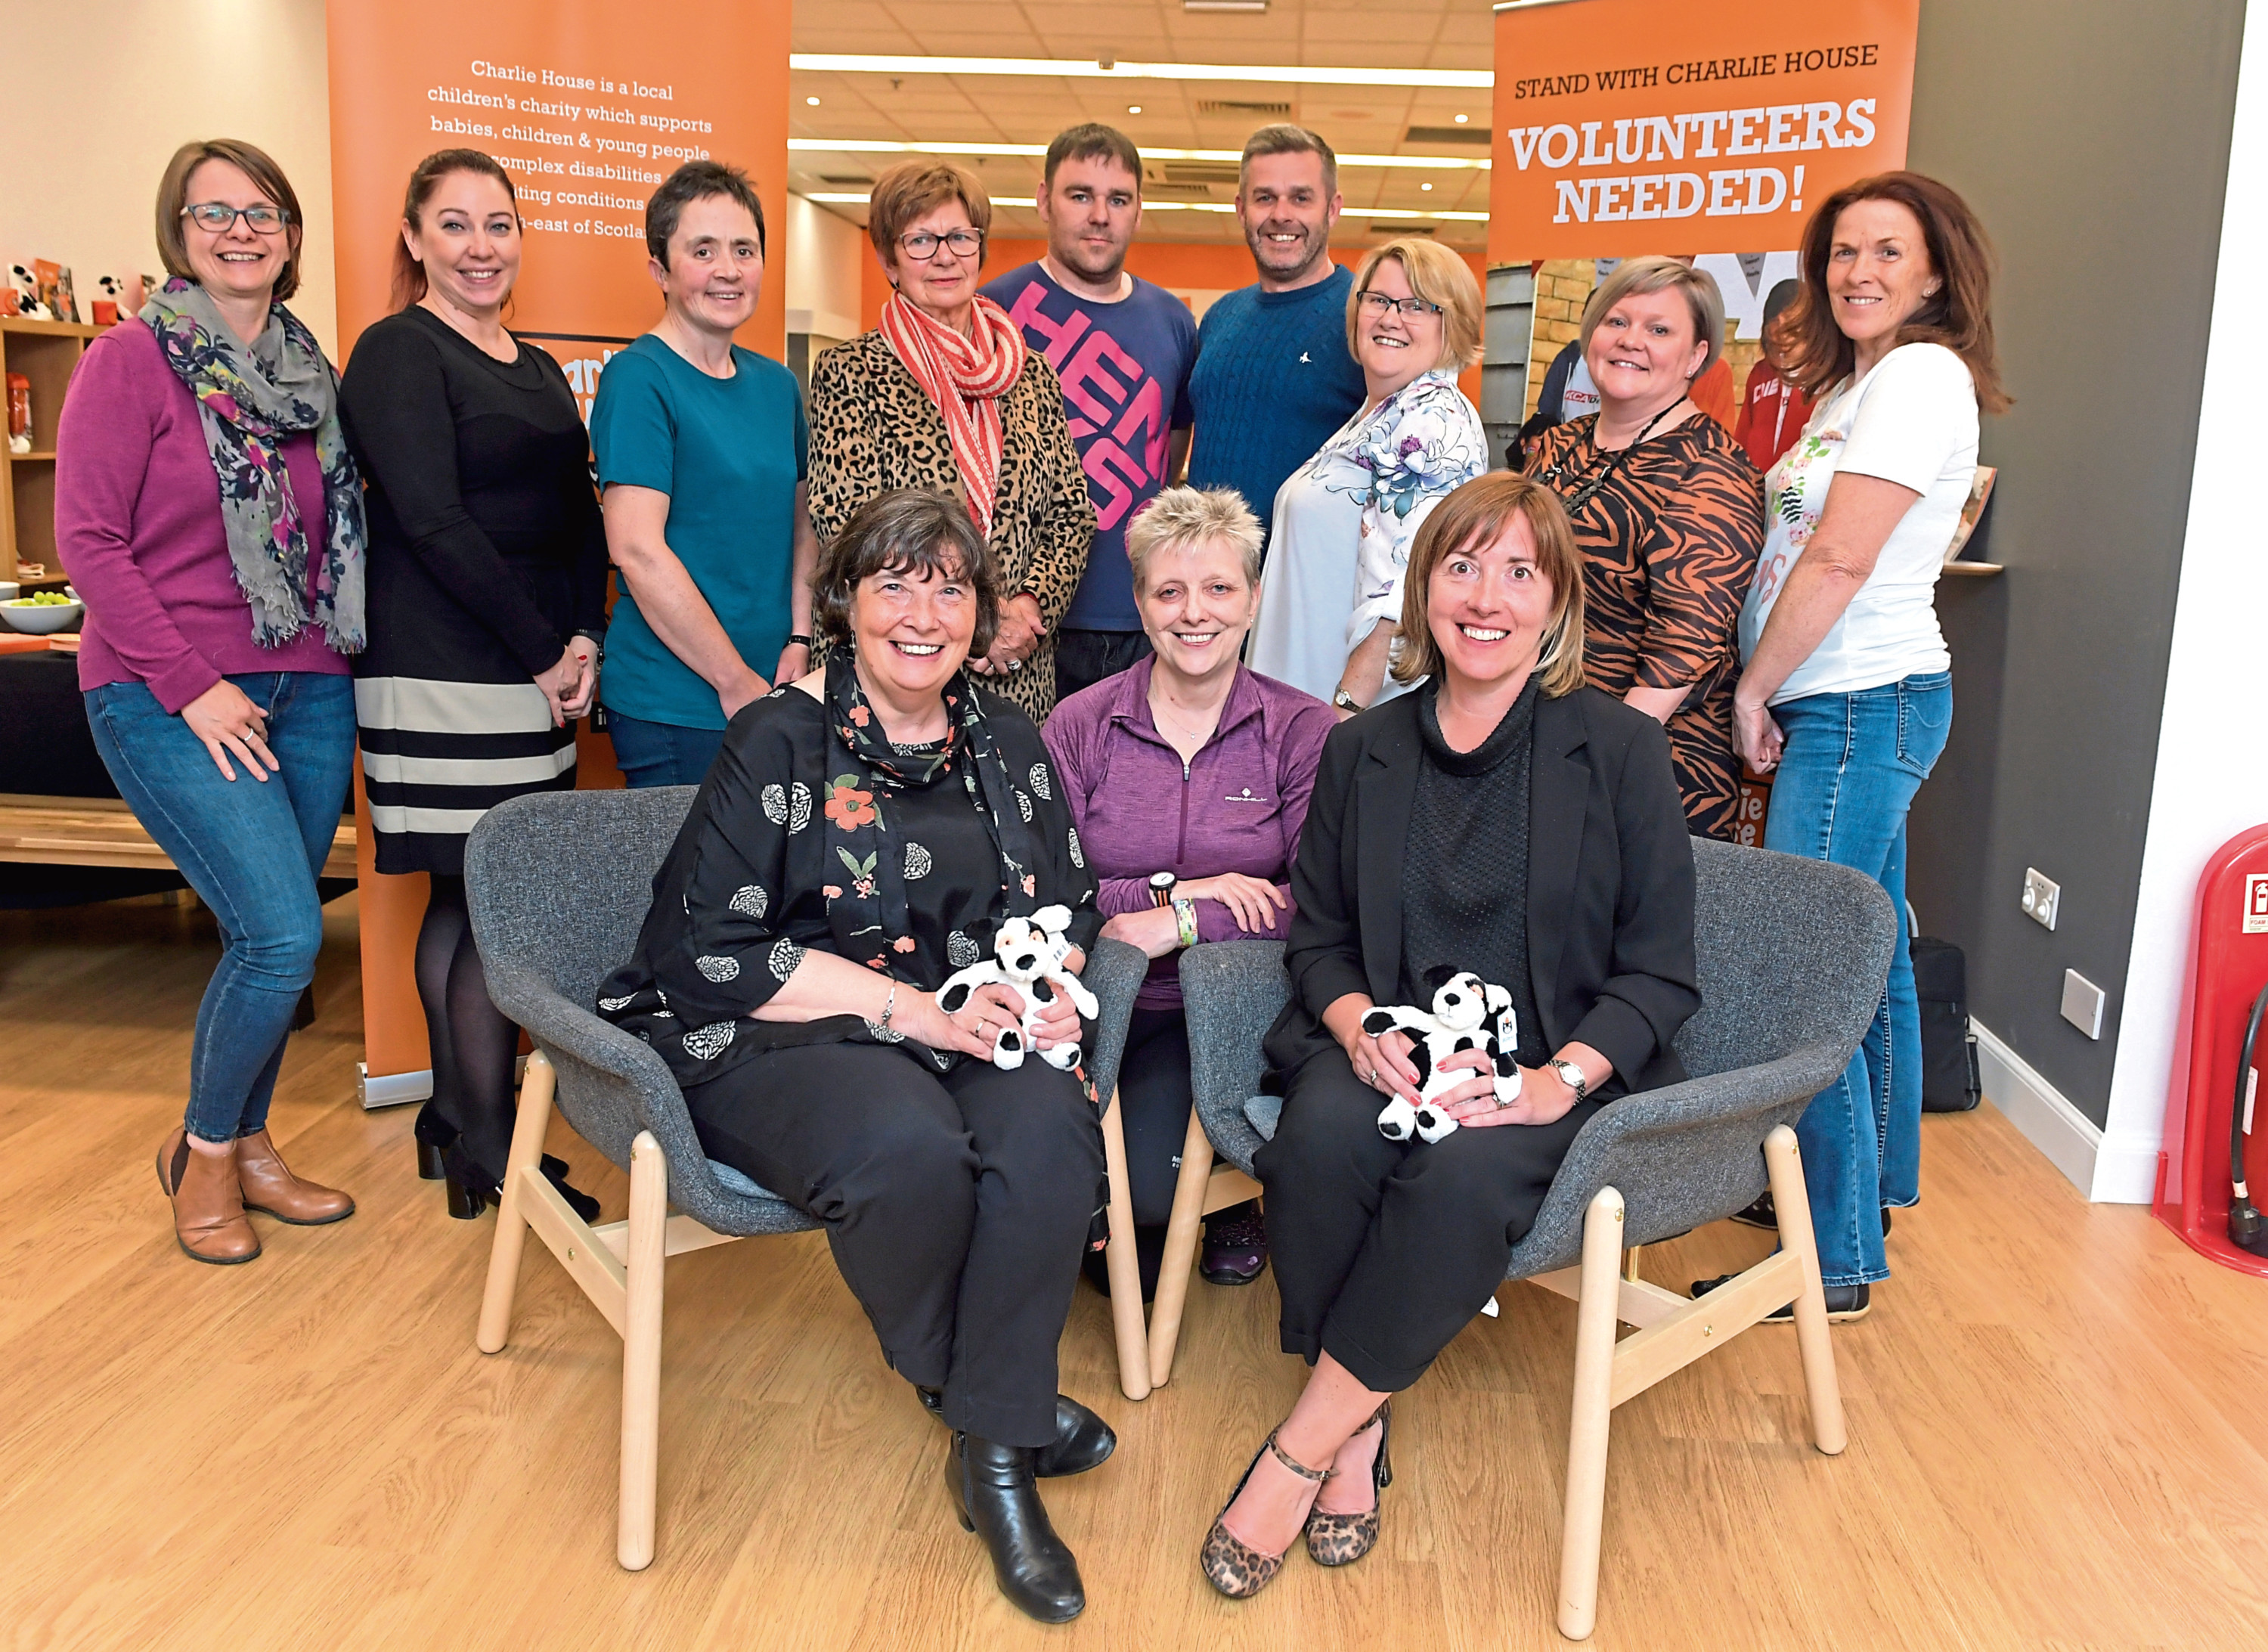 Volunteer information night for Charlie House with volunteer co-ordinator Joan Cowie and director of fundraising Susan Chrighton with volunteer staff.